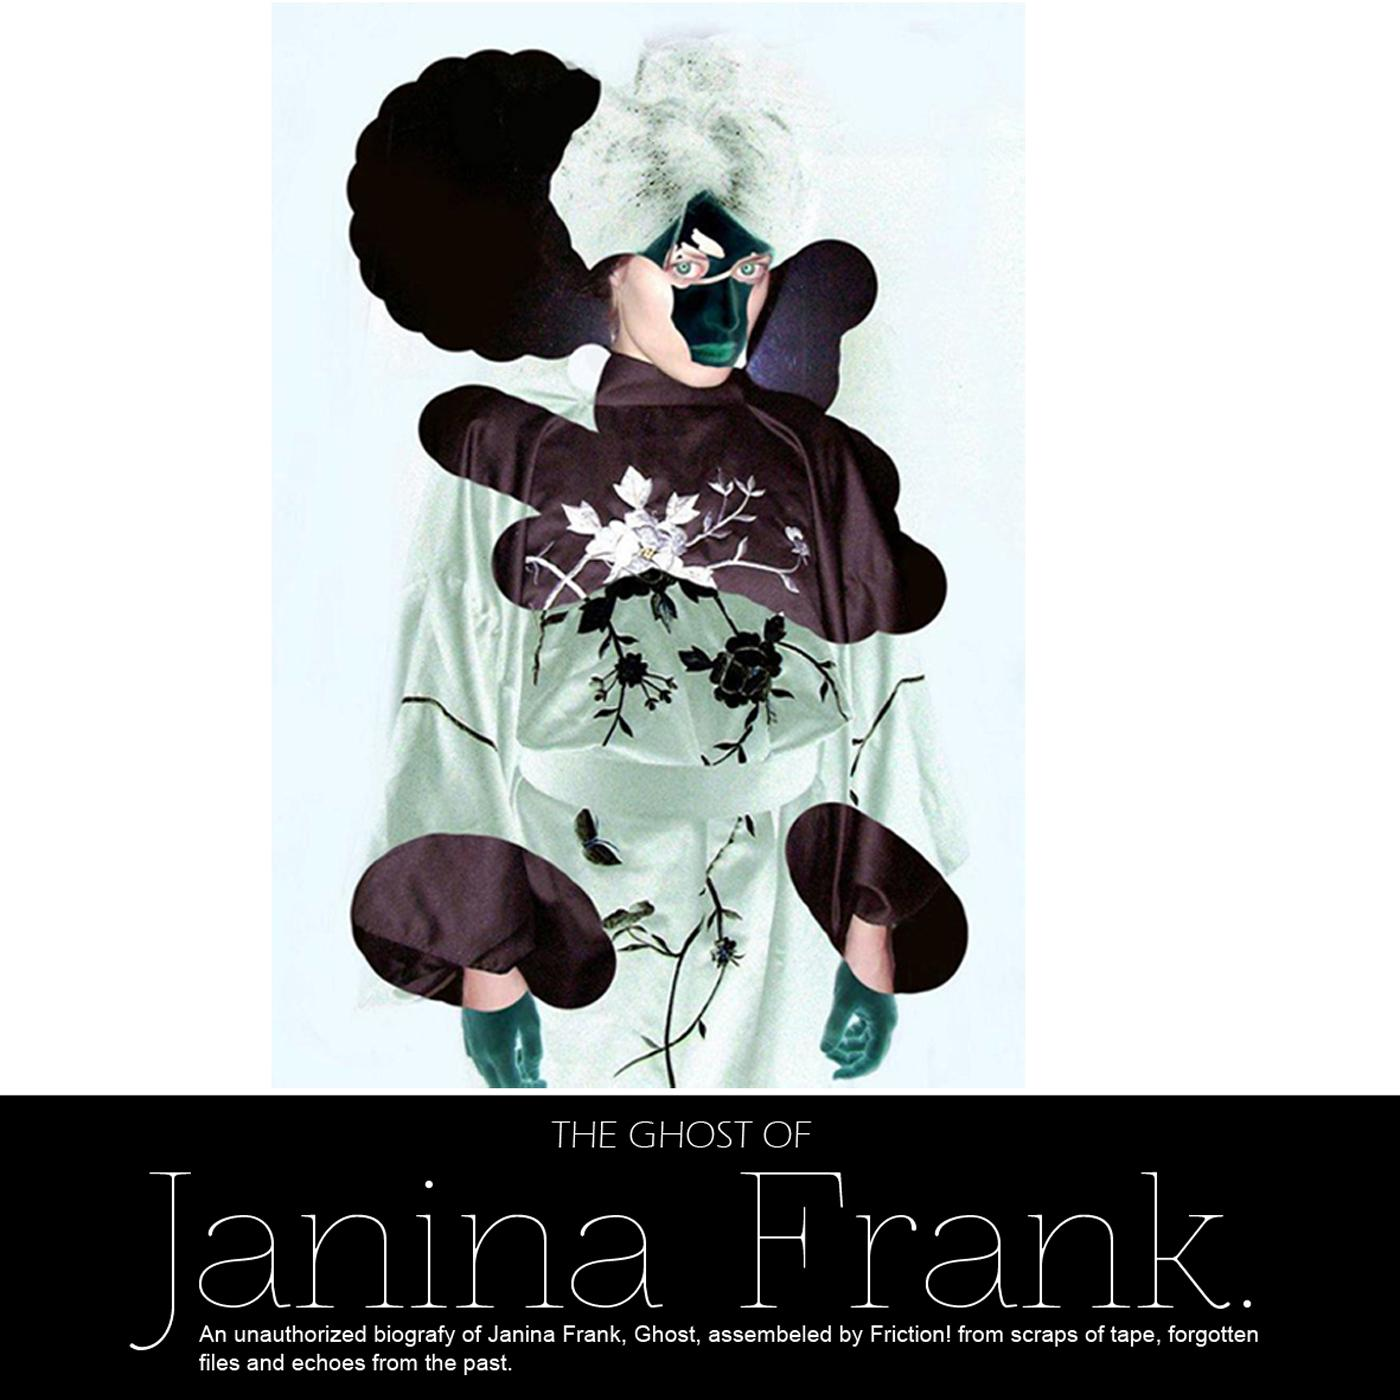 The Ghost of Janina Frank #2